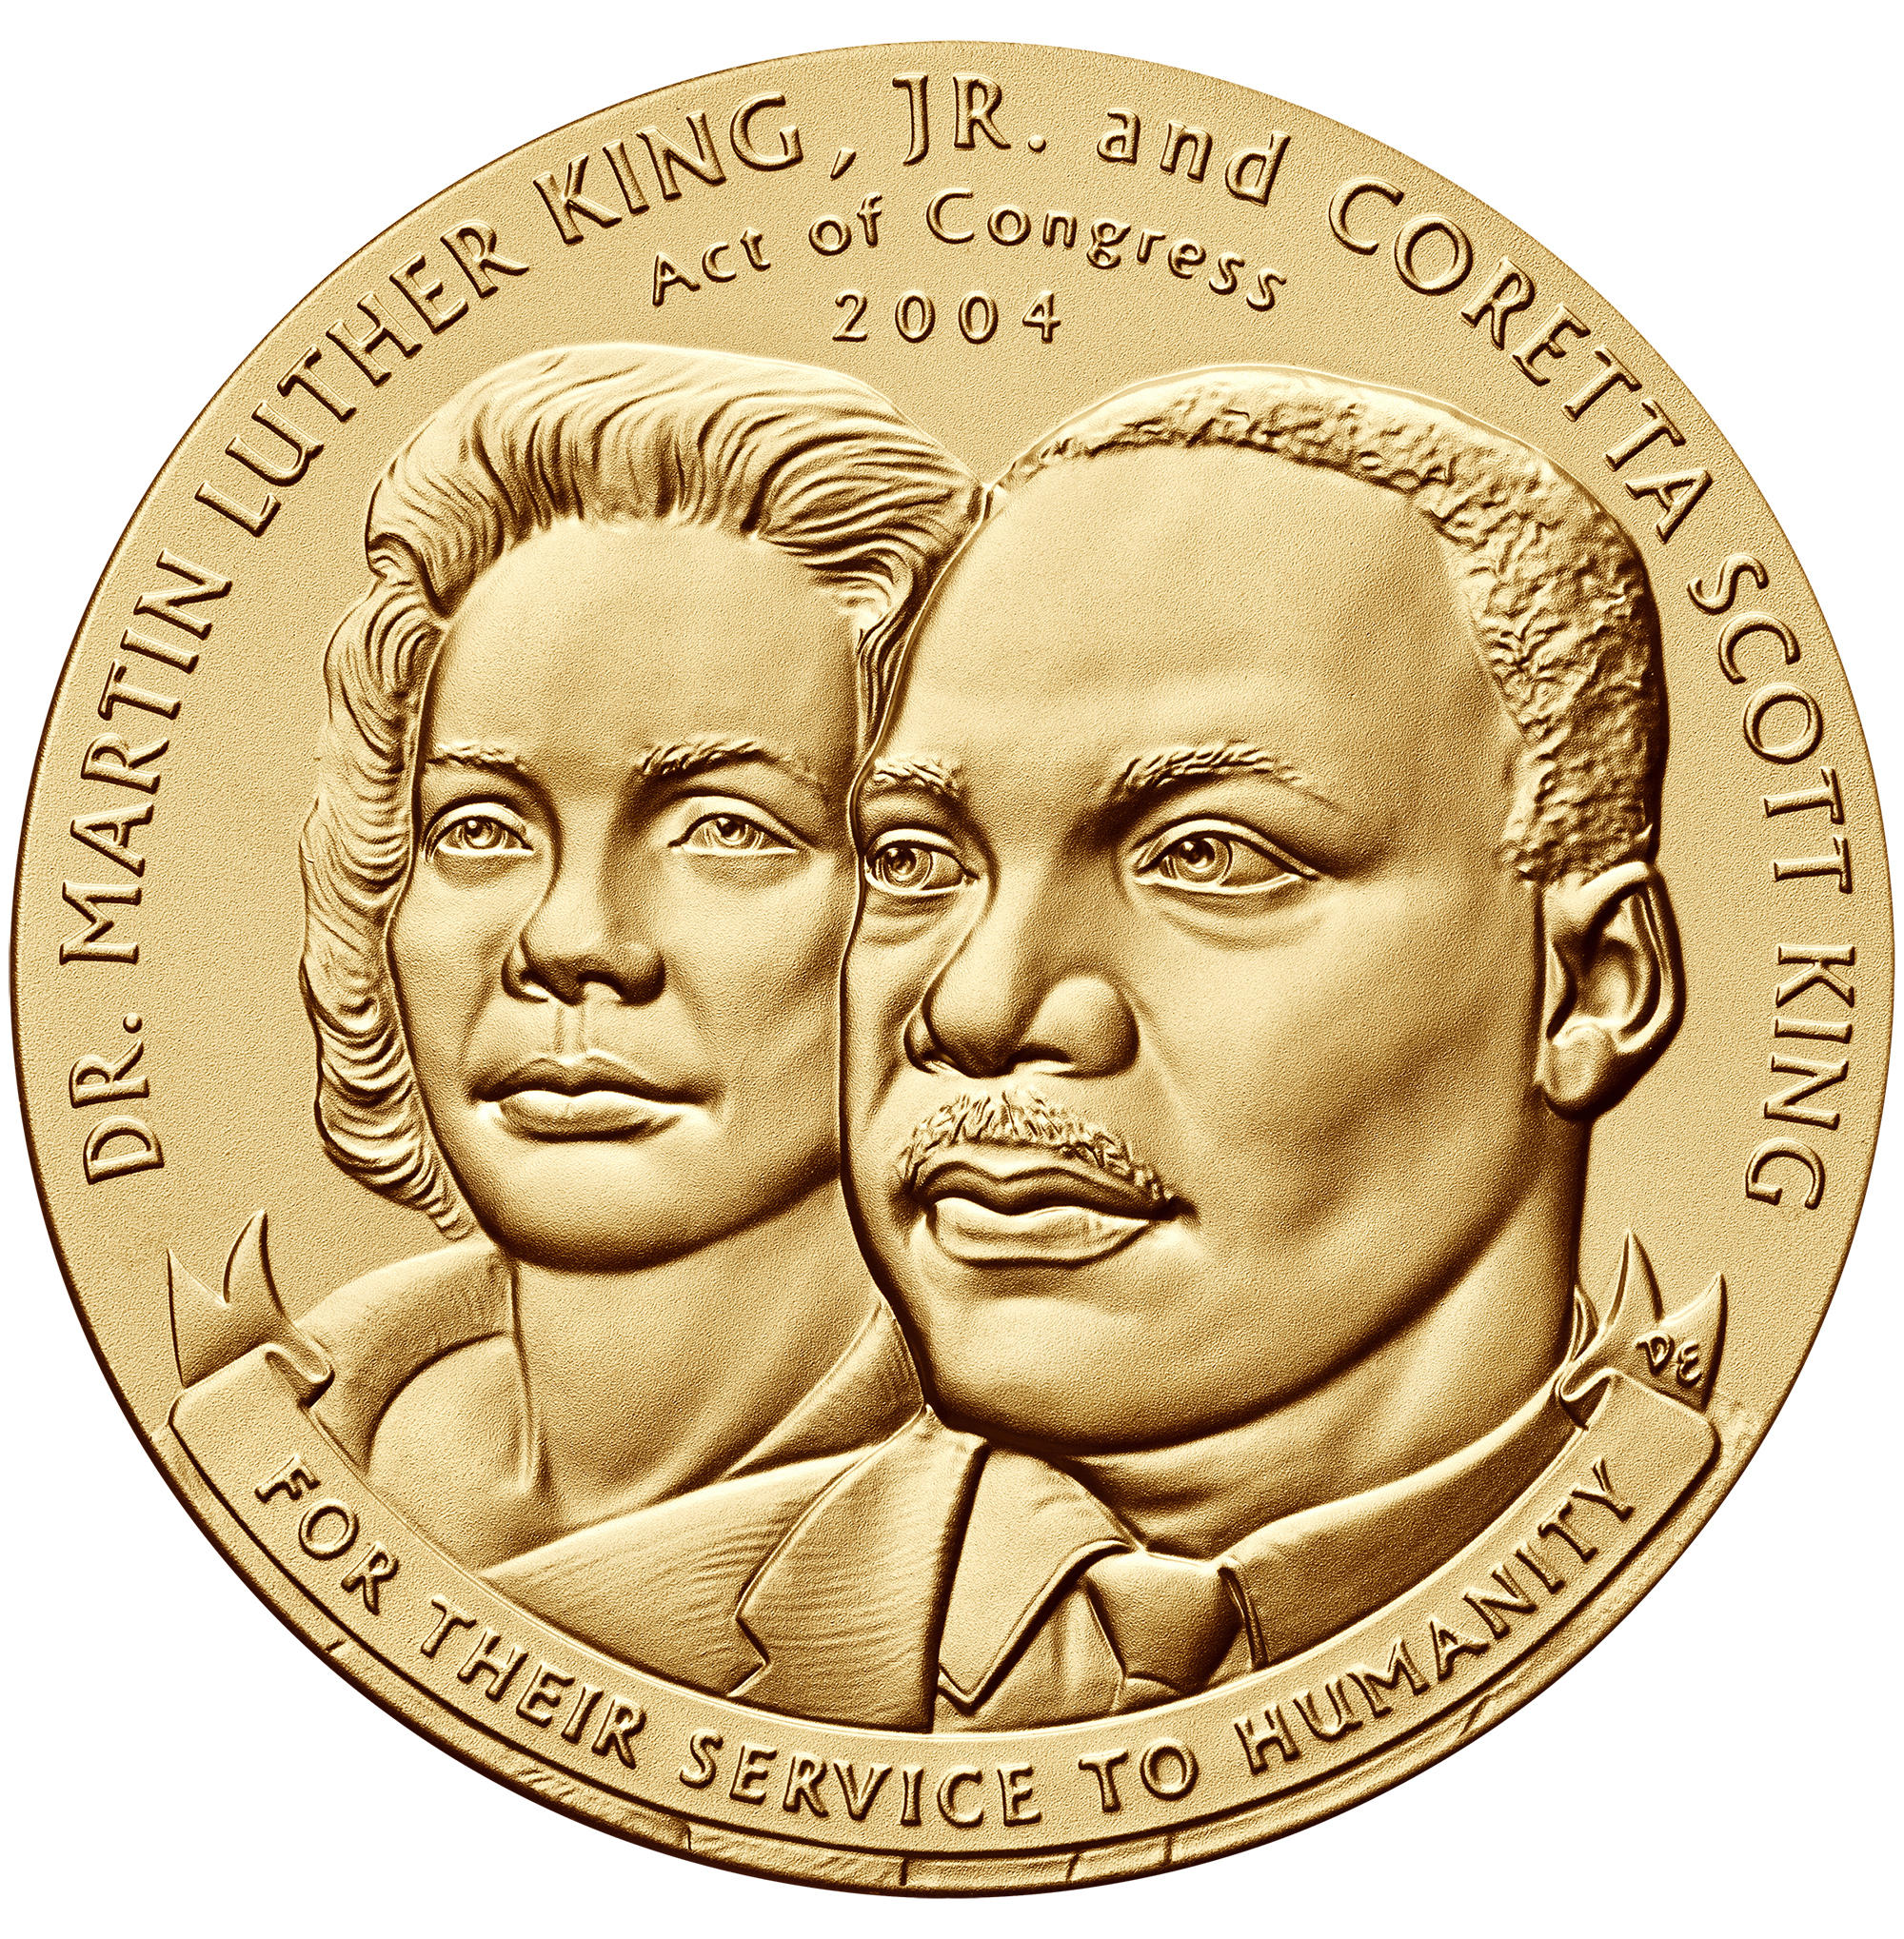 2004 Doctor Martin Luther And Coretta Scott King Bronze Medal Obverse